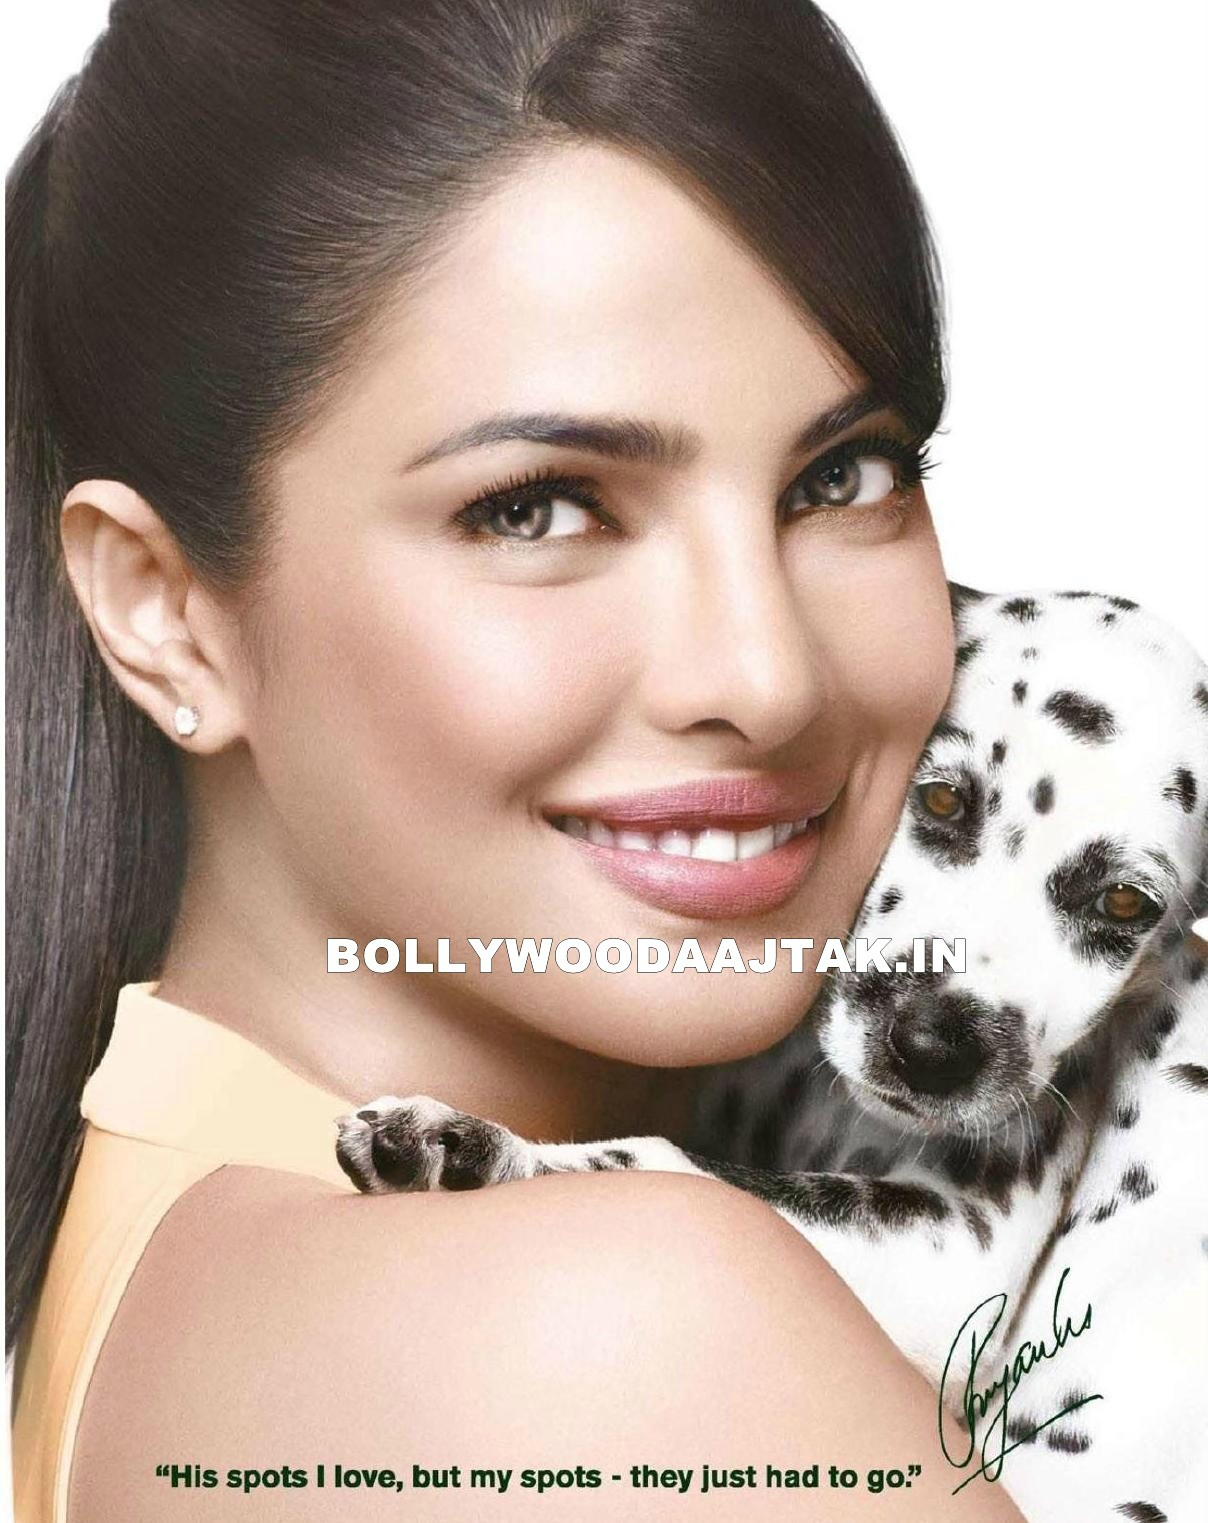 Priyanka Chopra Garnier Ad Face Close up1 - Priyanka Chopra Garnier Ad HQ Pics